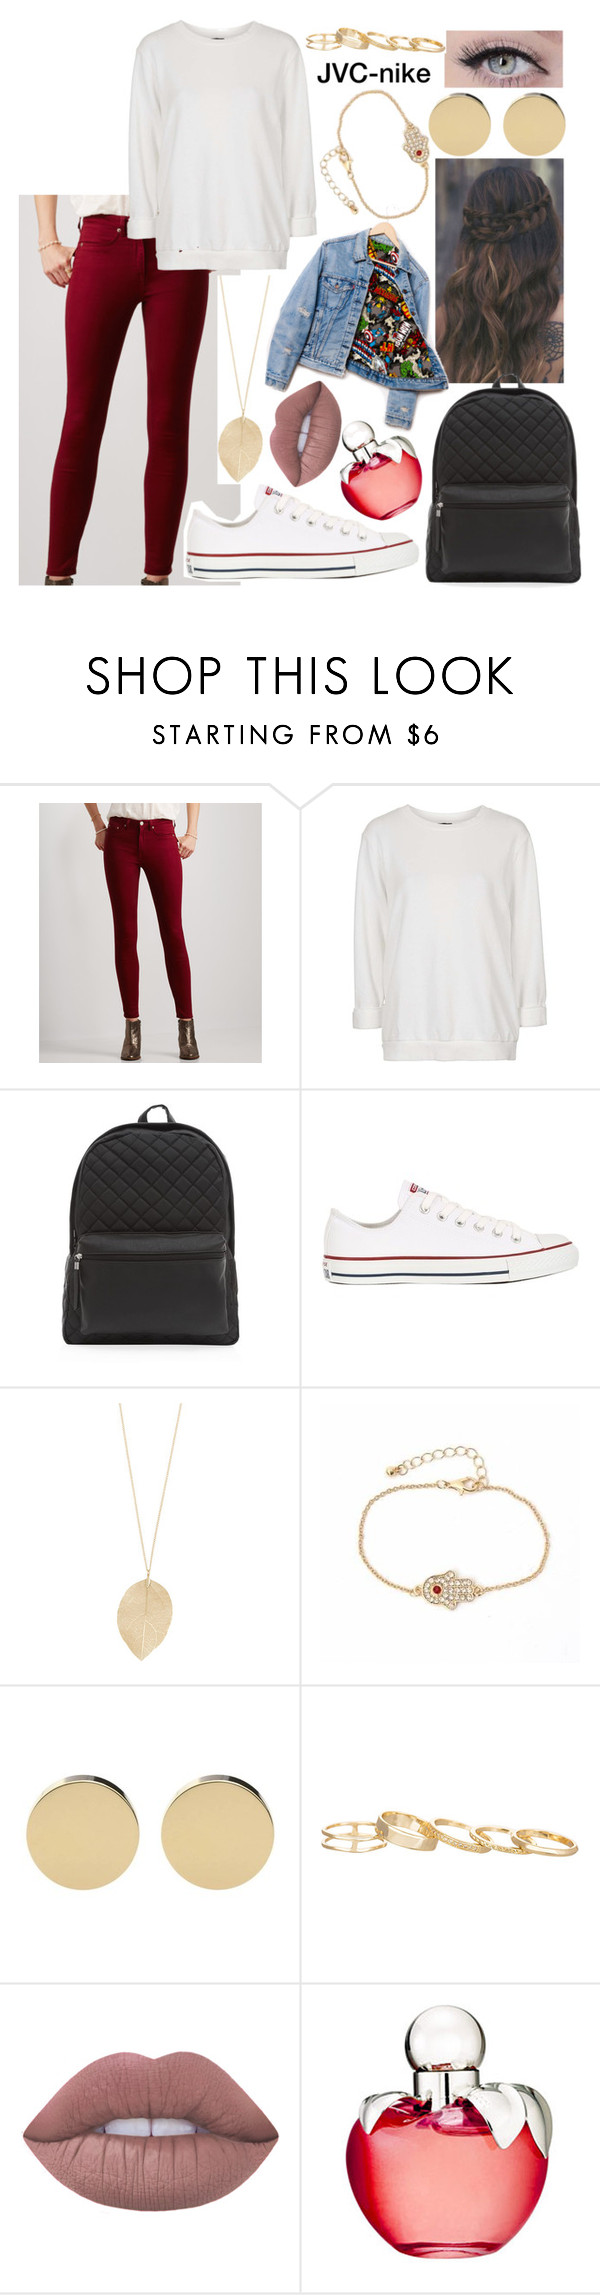 """Superhero"" by jvc-nike ❤ liked on Polyvore featuring Aéropostale, Topshop, Converse, Levi's, Kendra Scott, Lime Crime and Nina Ricci"